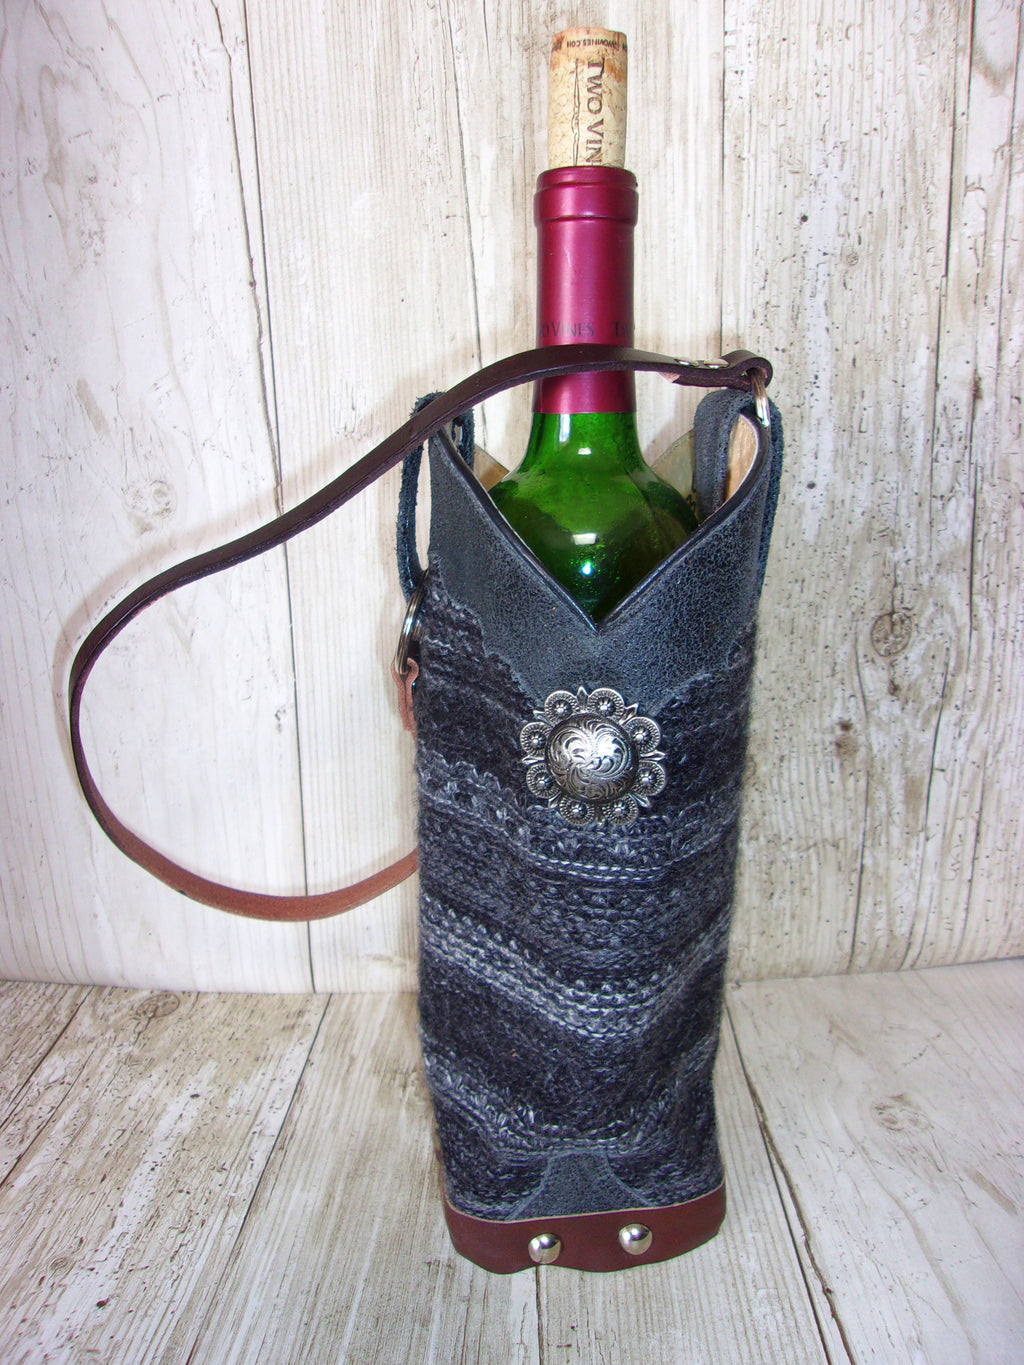 wt435 unique Leather Wine Tote handcrafted from recycled reclaimed cowboy boots